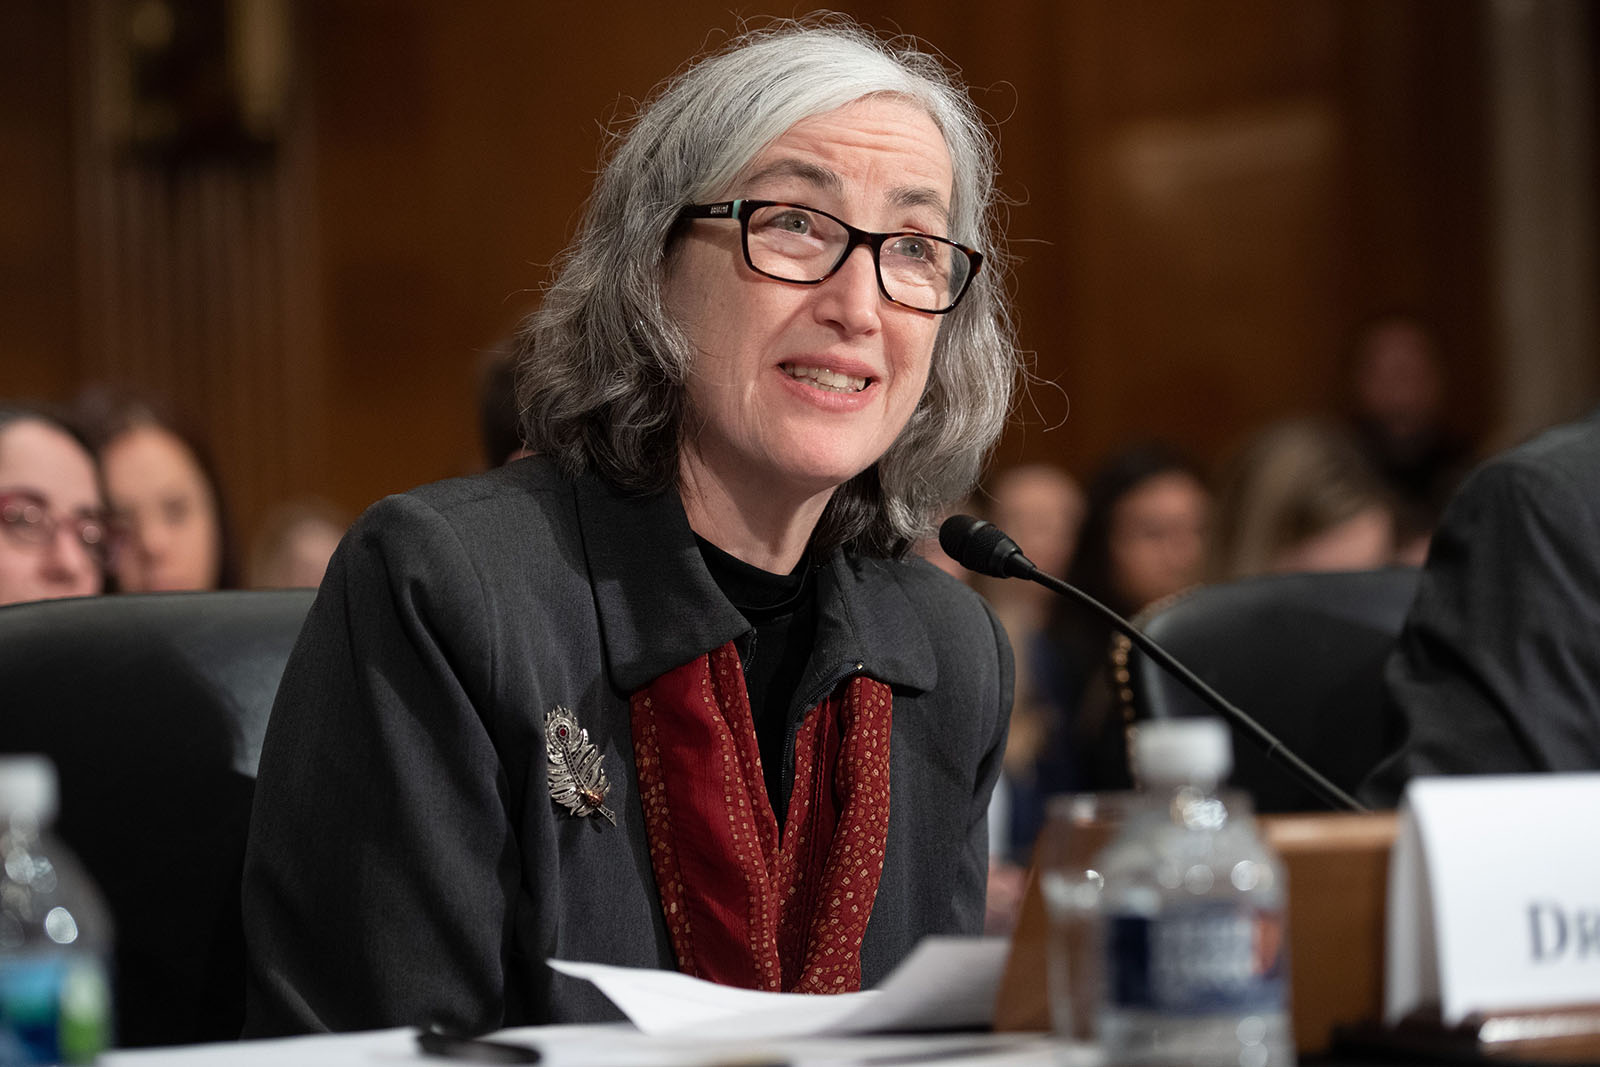 Dr. Anne Schuchat, principal deputy director of the CDC, testifies about the coronavirus during a senate Committee hearing on Health, Education, Labor, and Pensions on Capitol Hill in Washington on March 3.